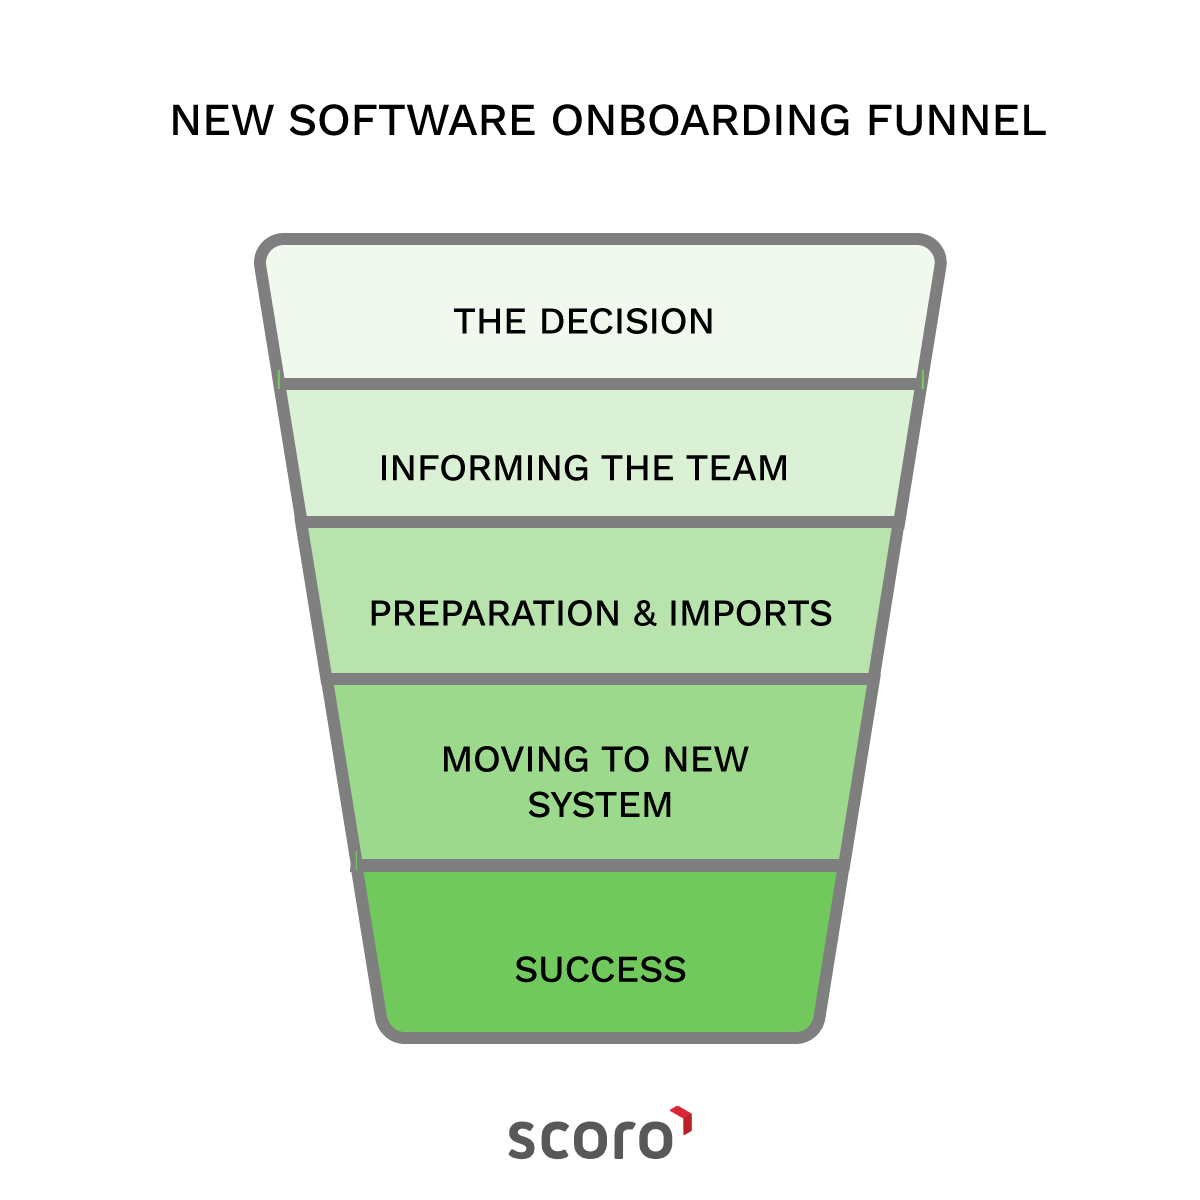 new software onboarding funnel